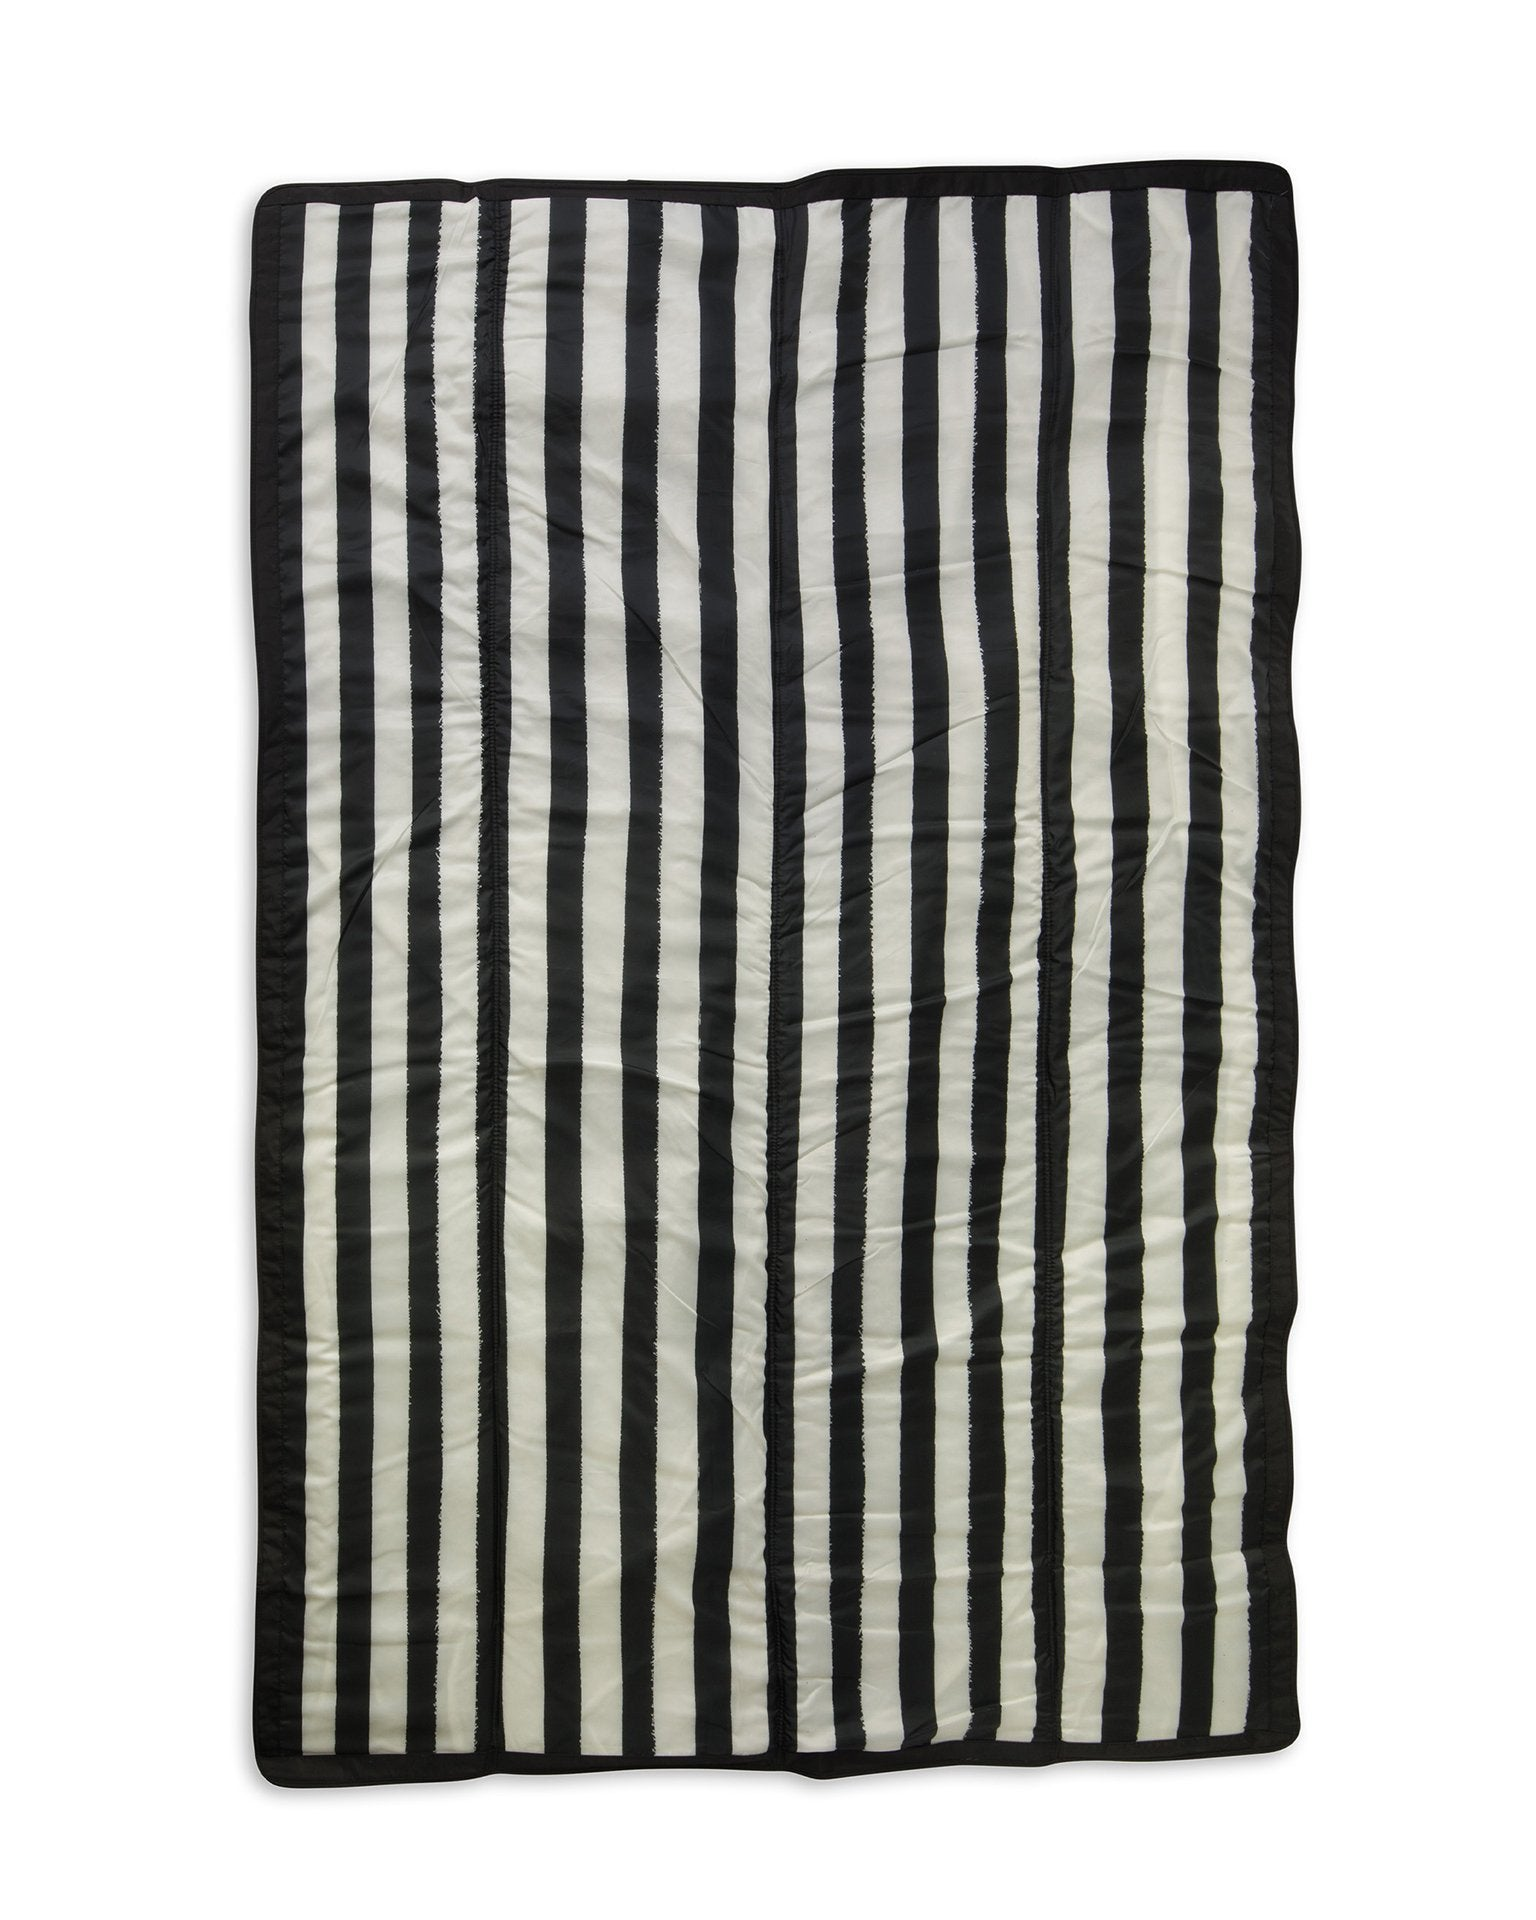 Little little unicorn play 5' x 7' outdoor blanket in black and white stripe